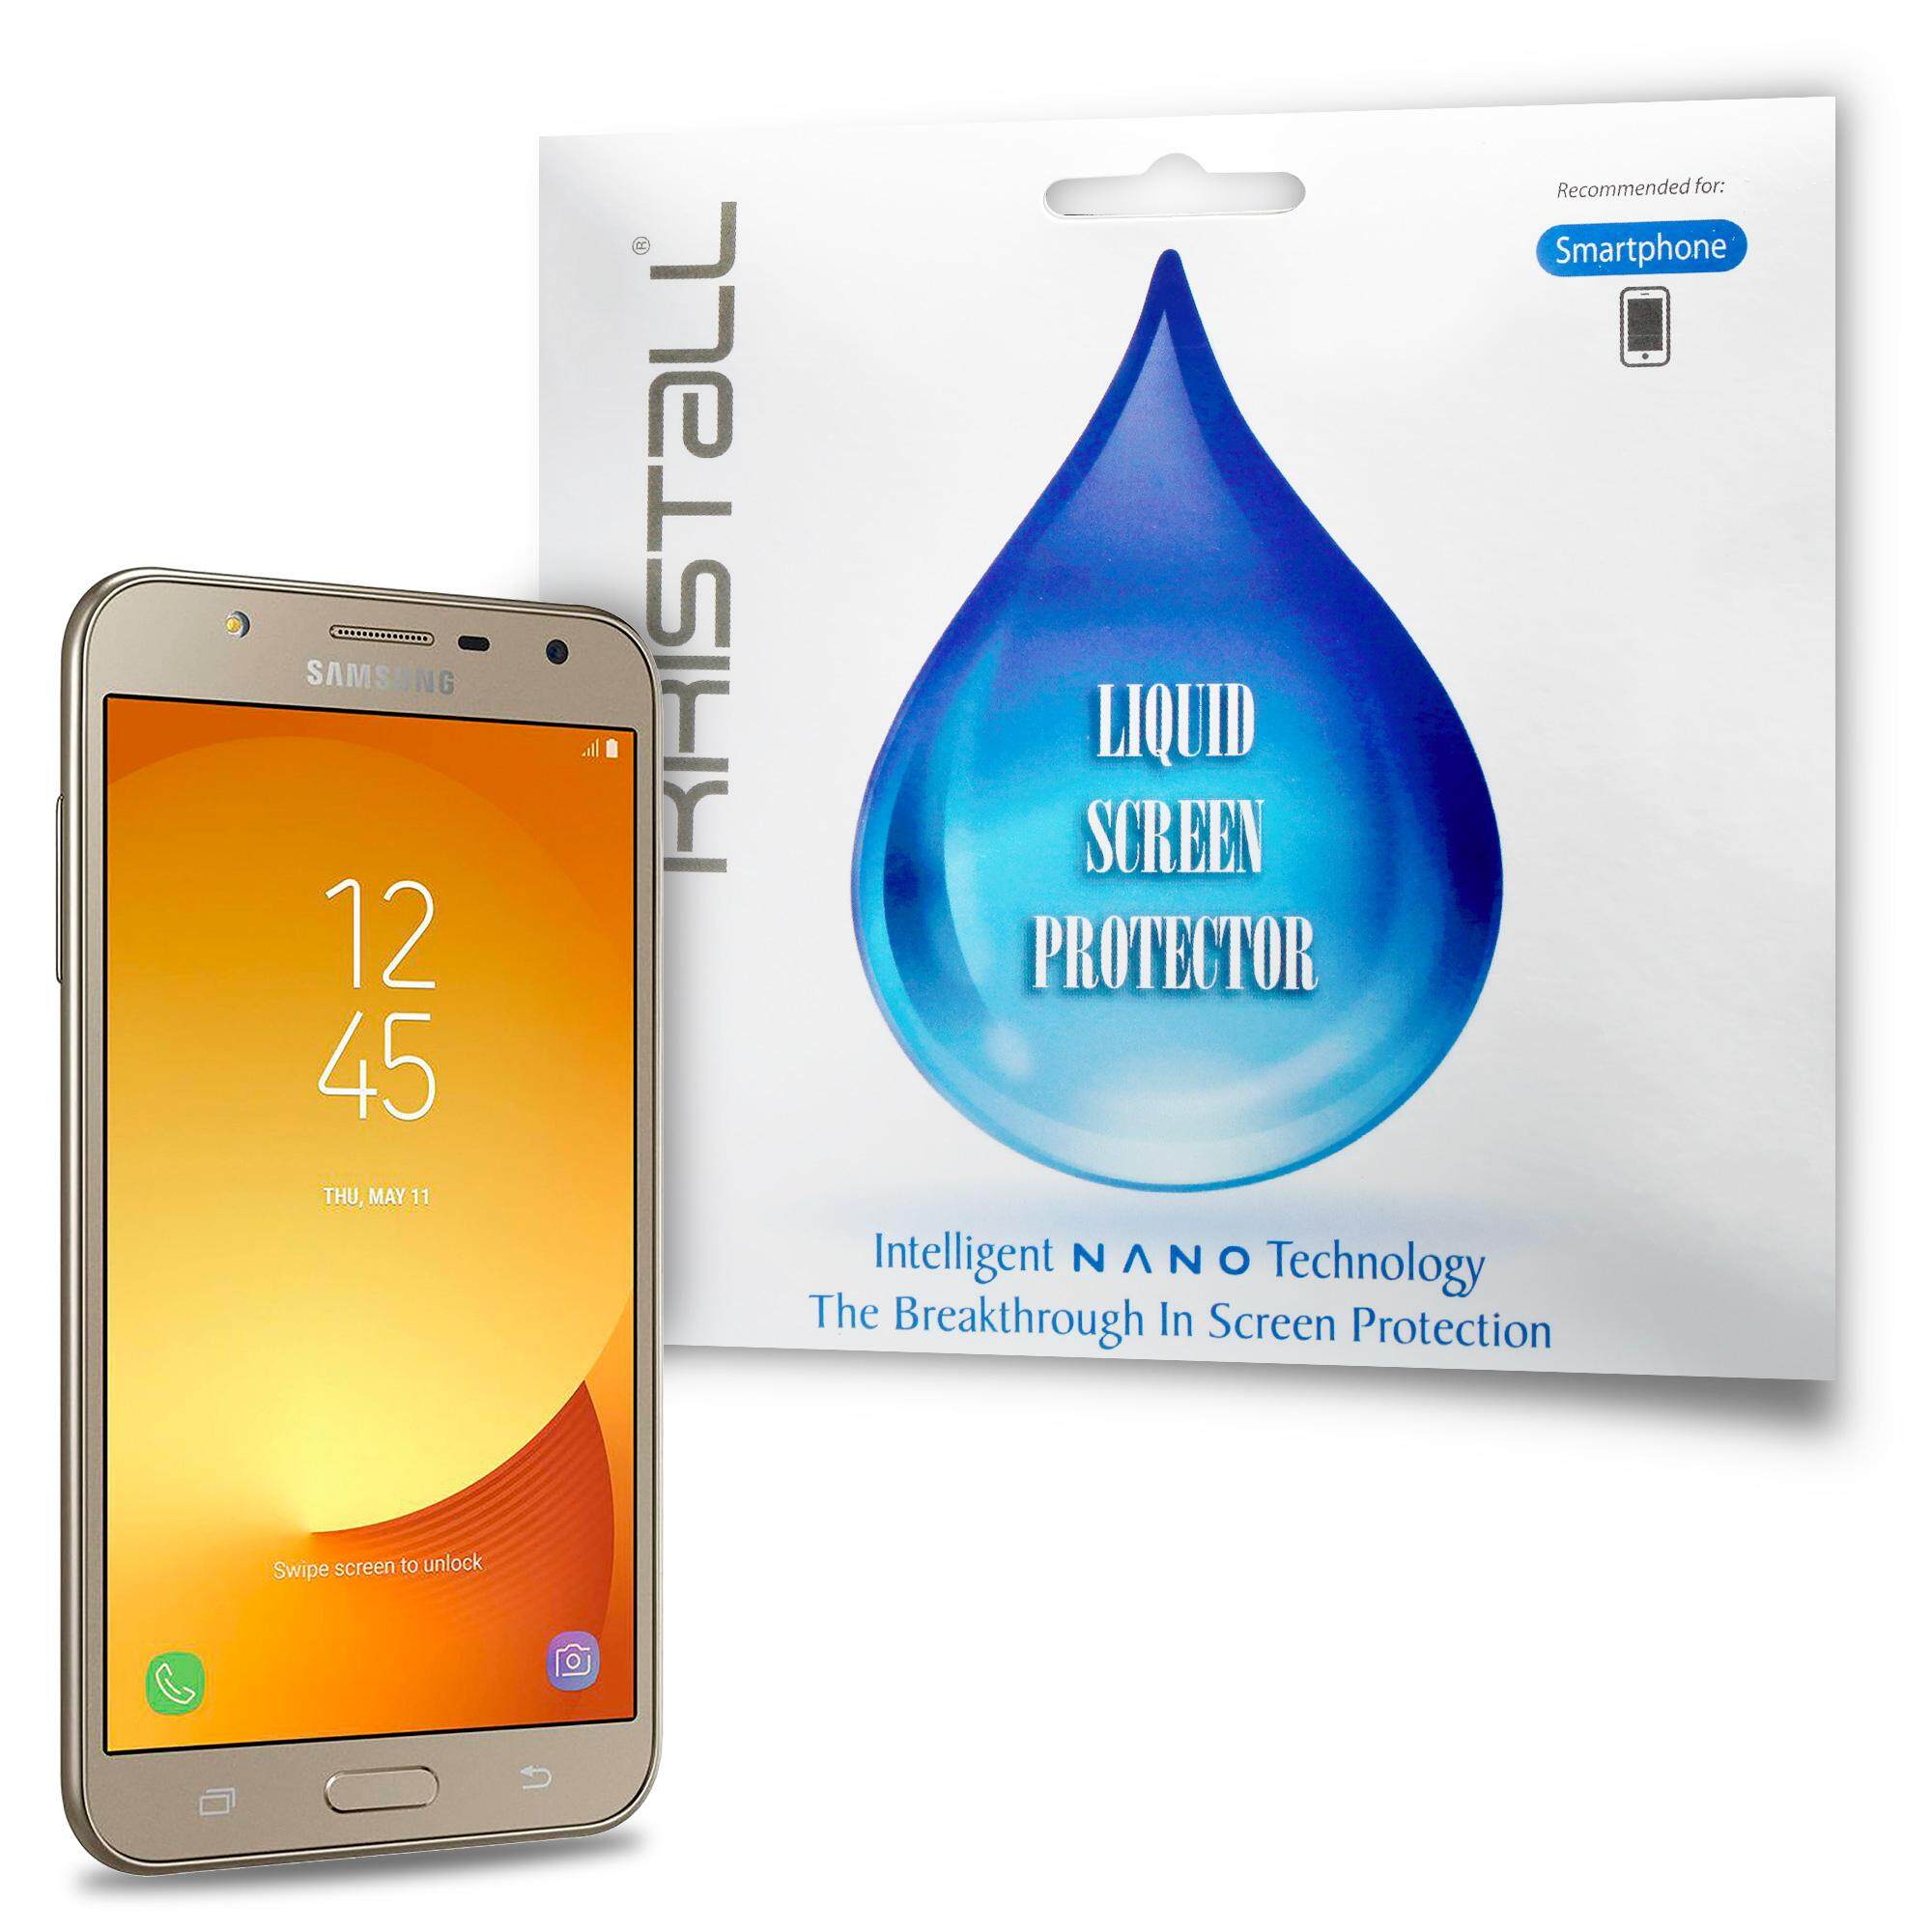 Samsung Galaxy J7 Pro Screen Protector - Kristall® Nano Liquid Screen  Protector (Bubble-FREE Screen Protector, 9H Hardness, Scratch Resistant)